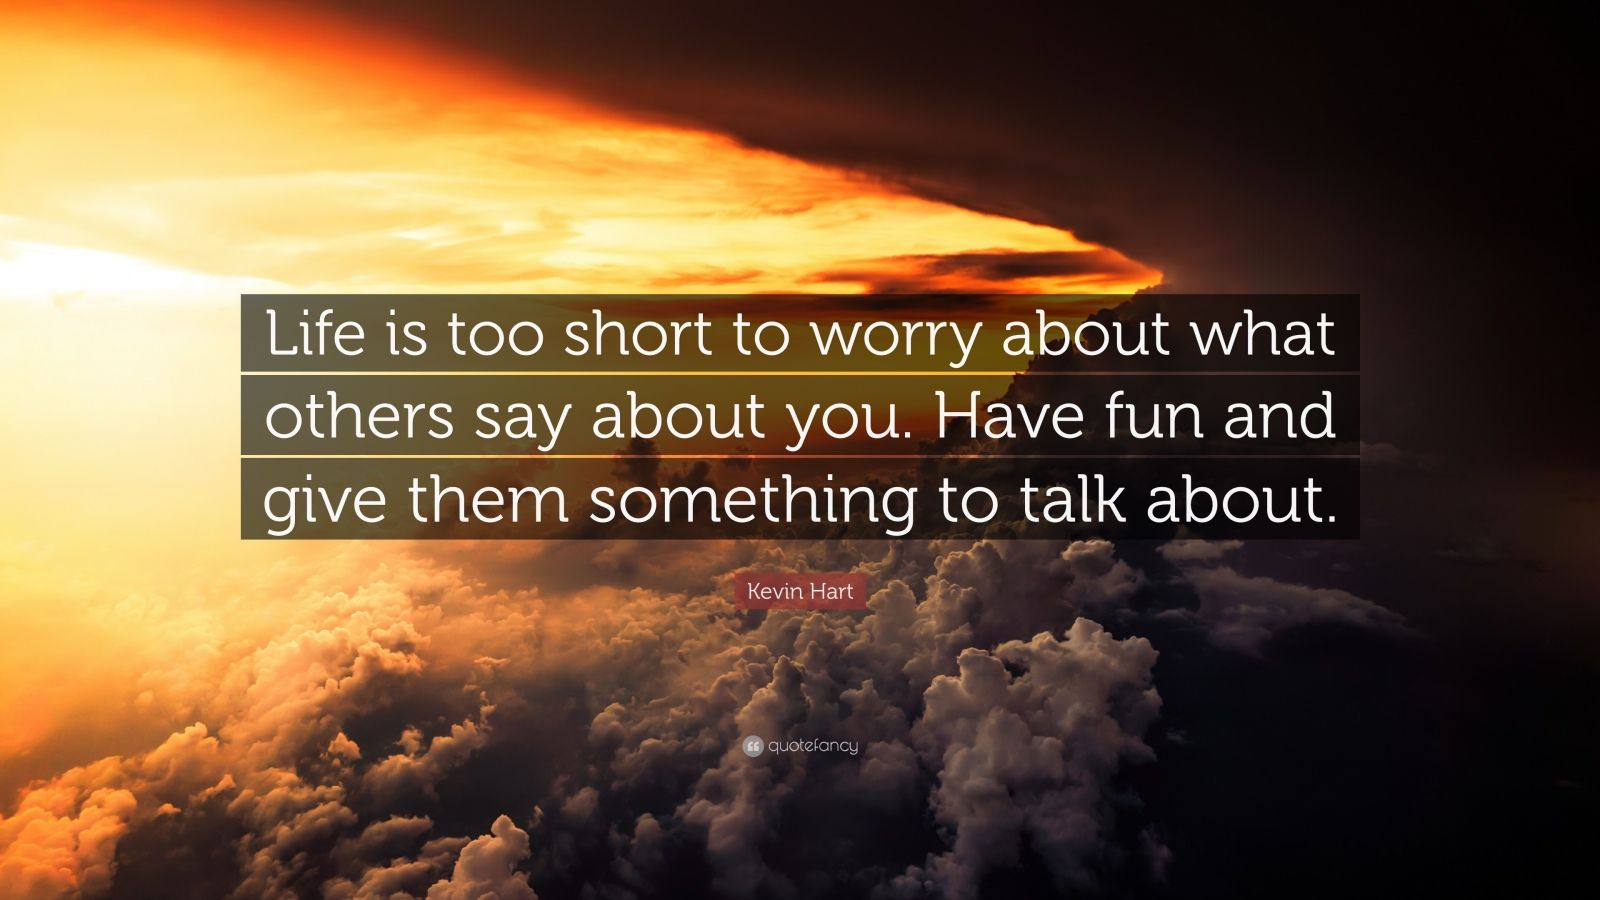 "Fun Quotes: ""Life is too short to worry about what others say about you. Have fun and give them something to talk about."" — Kevin Hart"